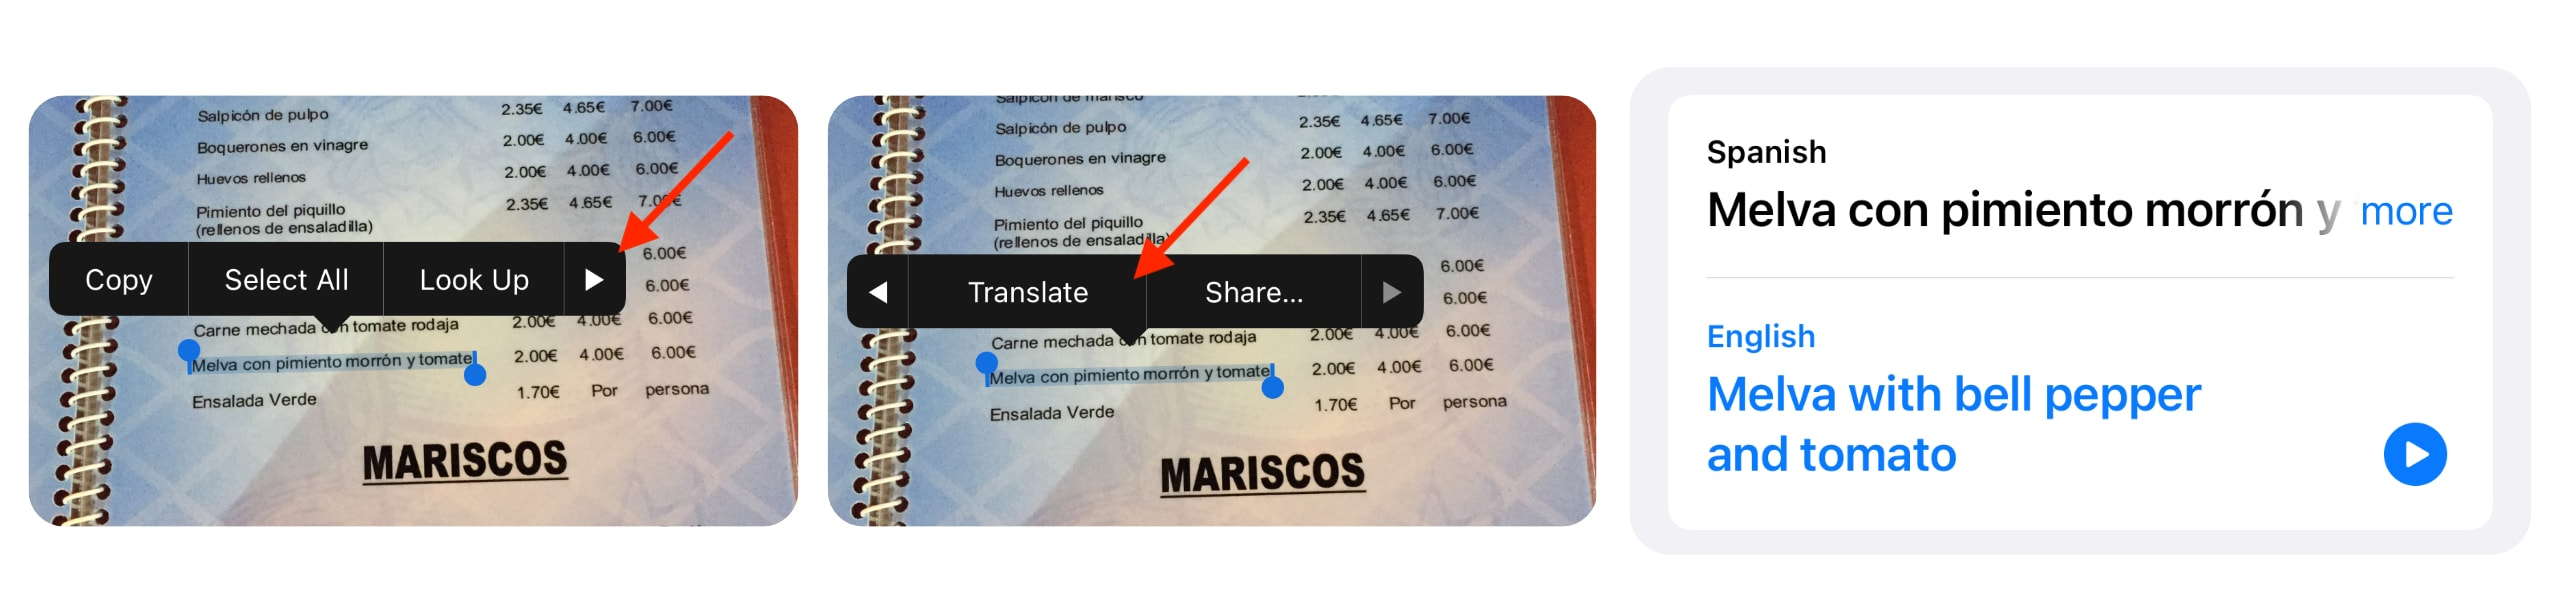 Translate text in photos in iOS 15